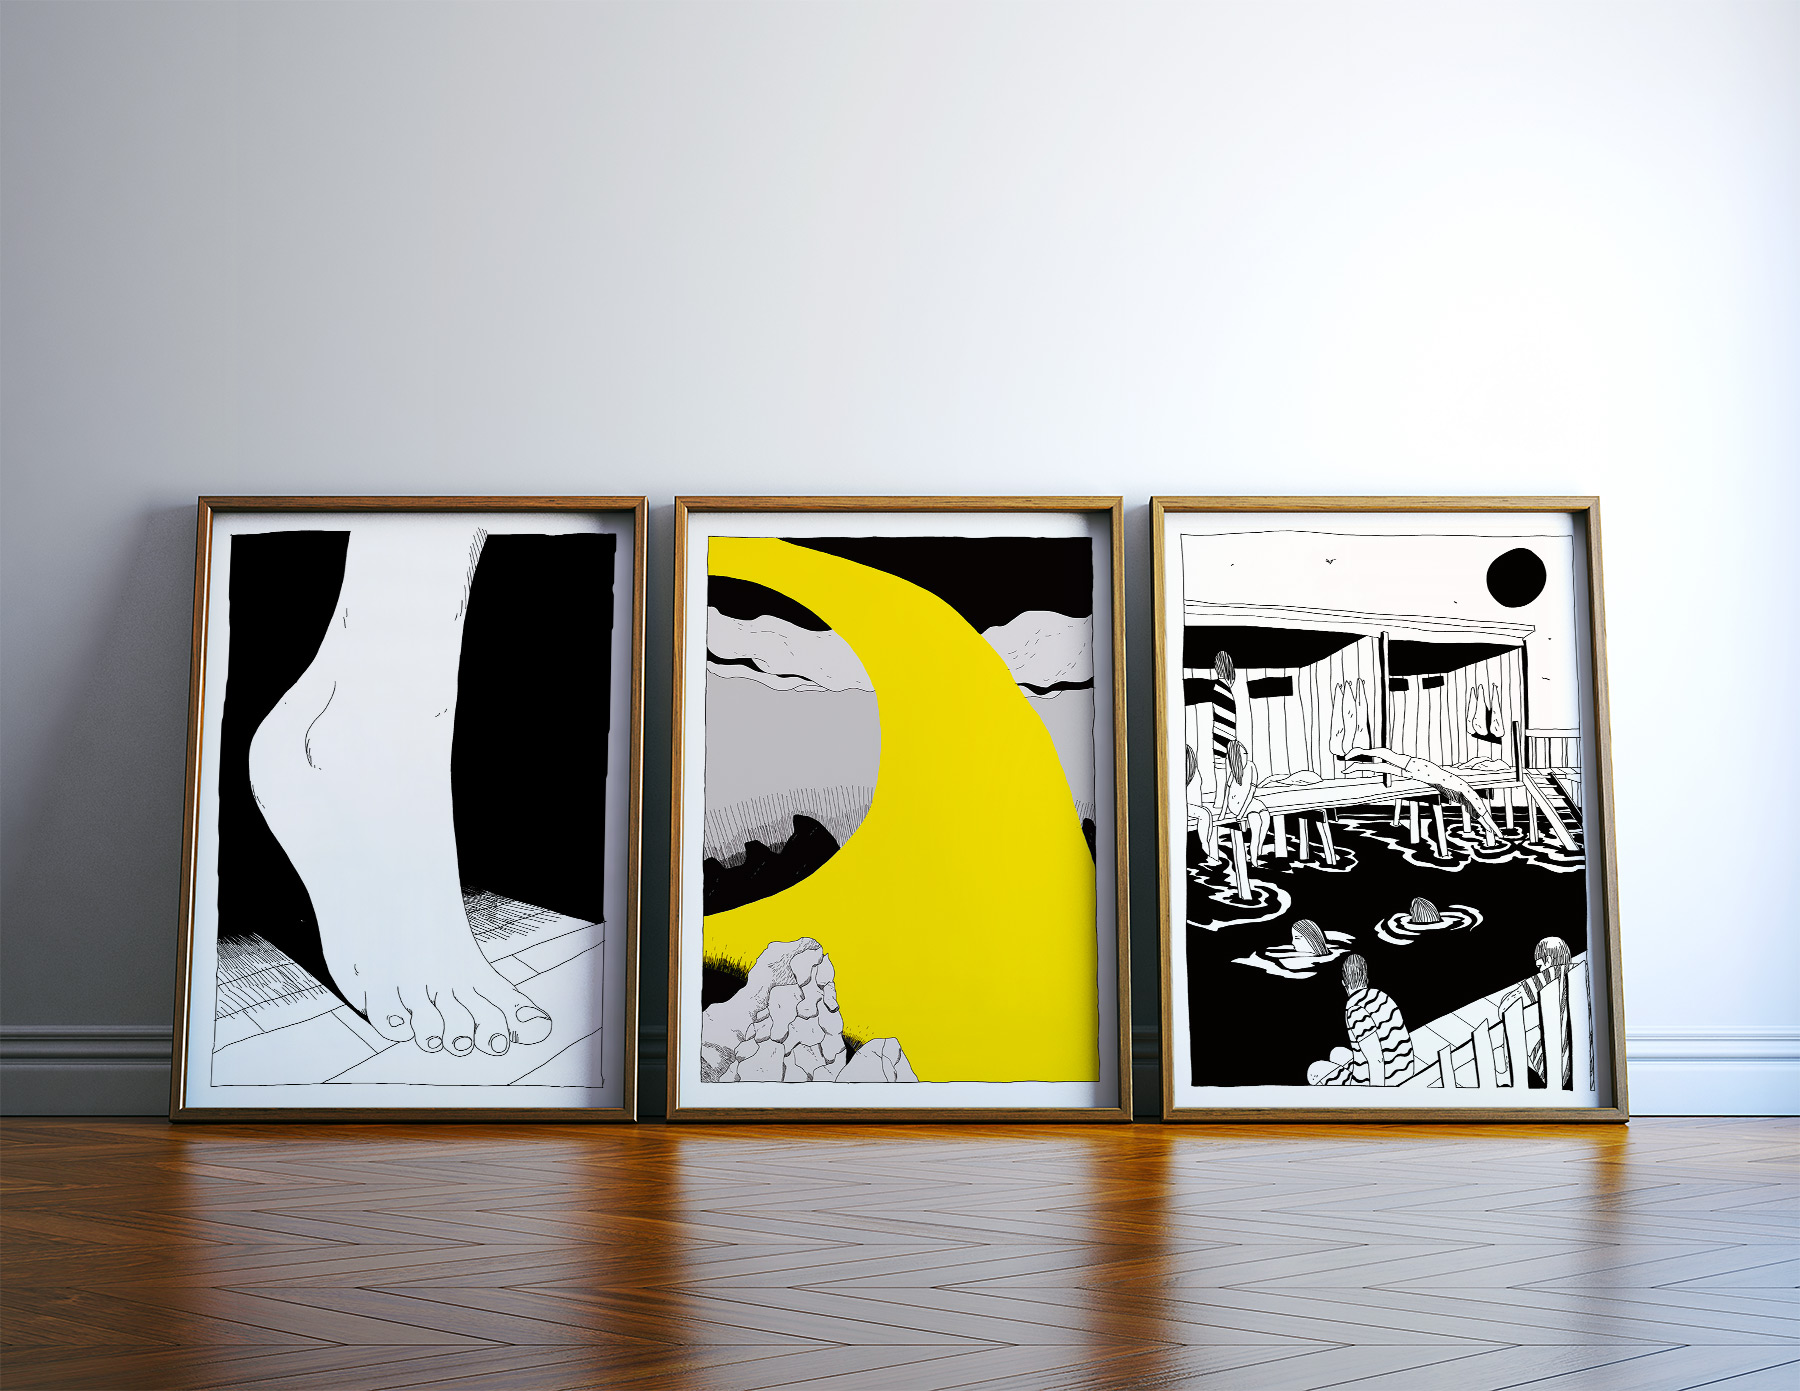 posters, giclee, graphical, illustrative, monochrome, portraiture, bodies, sexuality, black, white, paper, black-and-white, contemporary-art, danish, design, erotic, interior, interior-design, modern, modern-art, nordic, posters, prints, scandinavien, sexual, Buy original high quality art. Paintings, drawings, limited edition prints & posters by talented artists.